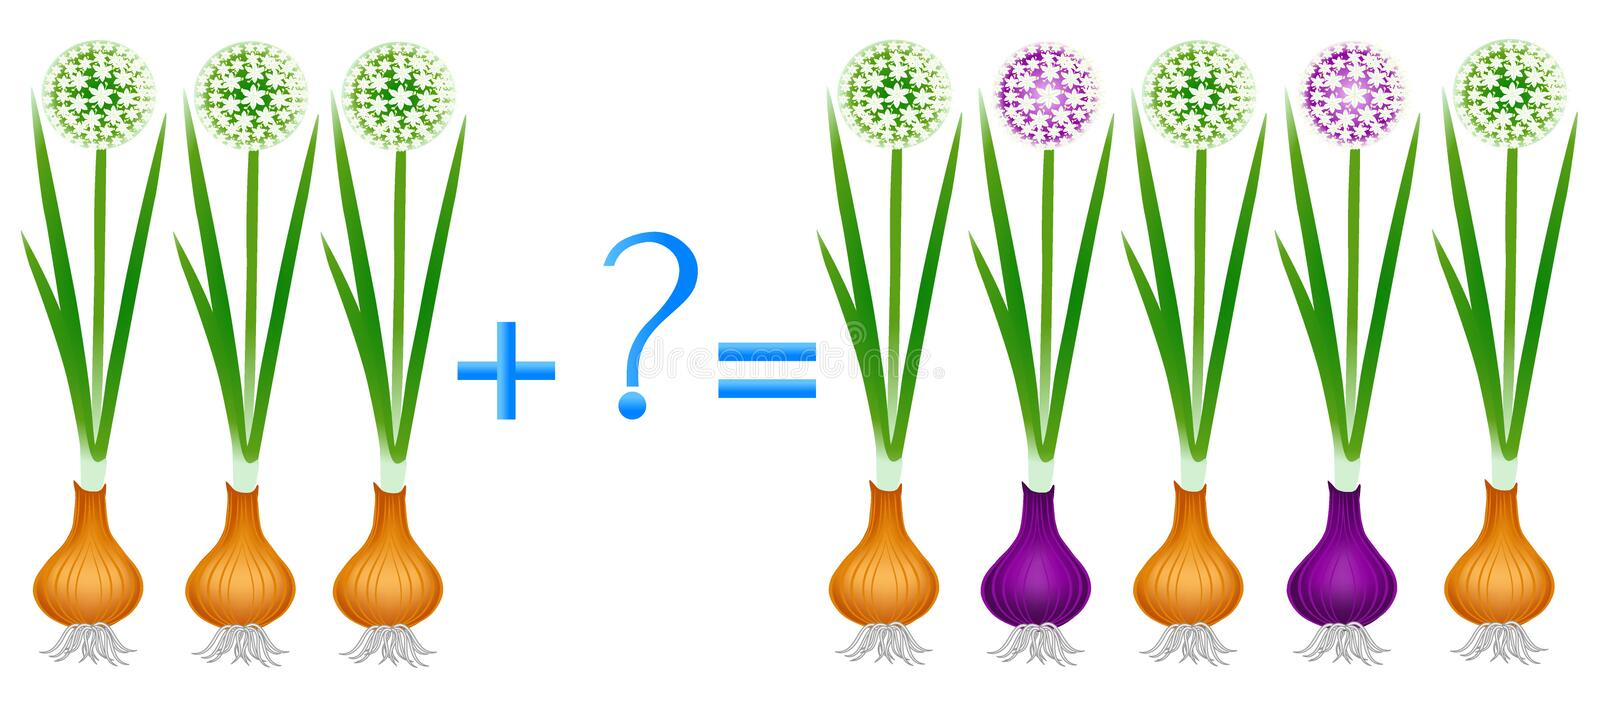 Action relationship of addition, examples with plant onion. Educational game for children. Action relationship of addition, examples with plant onion royalty free illustration